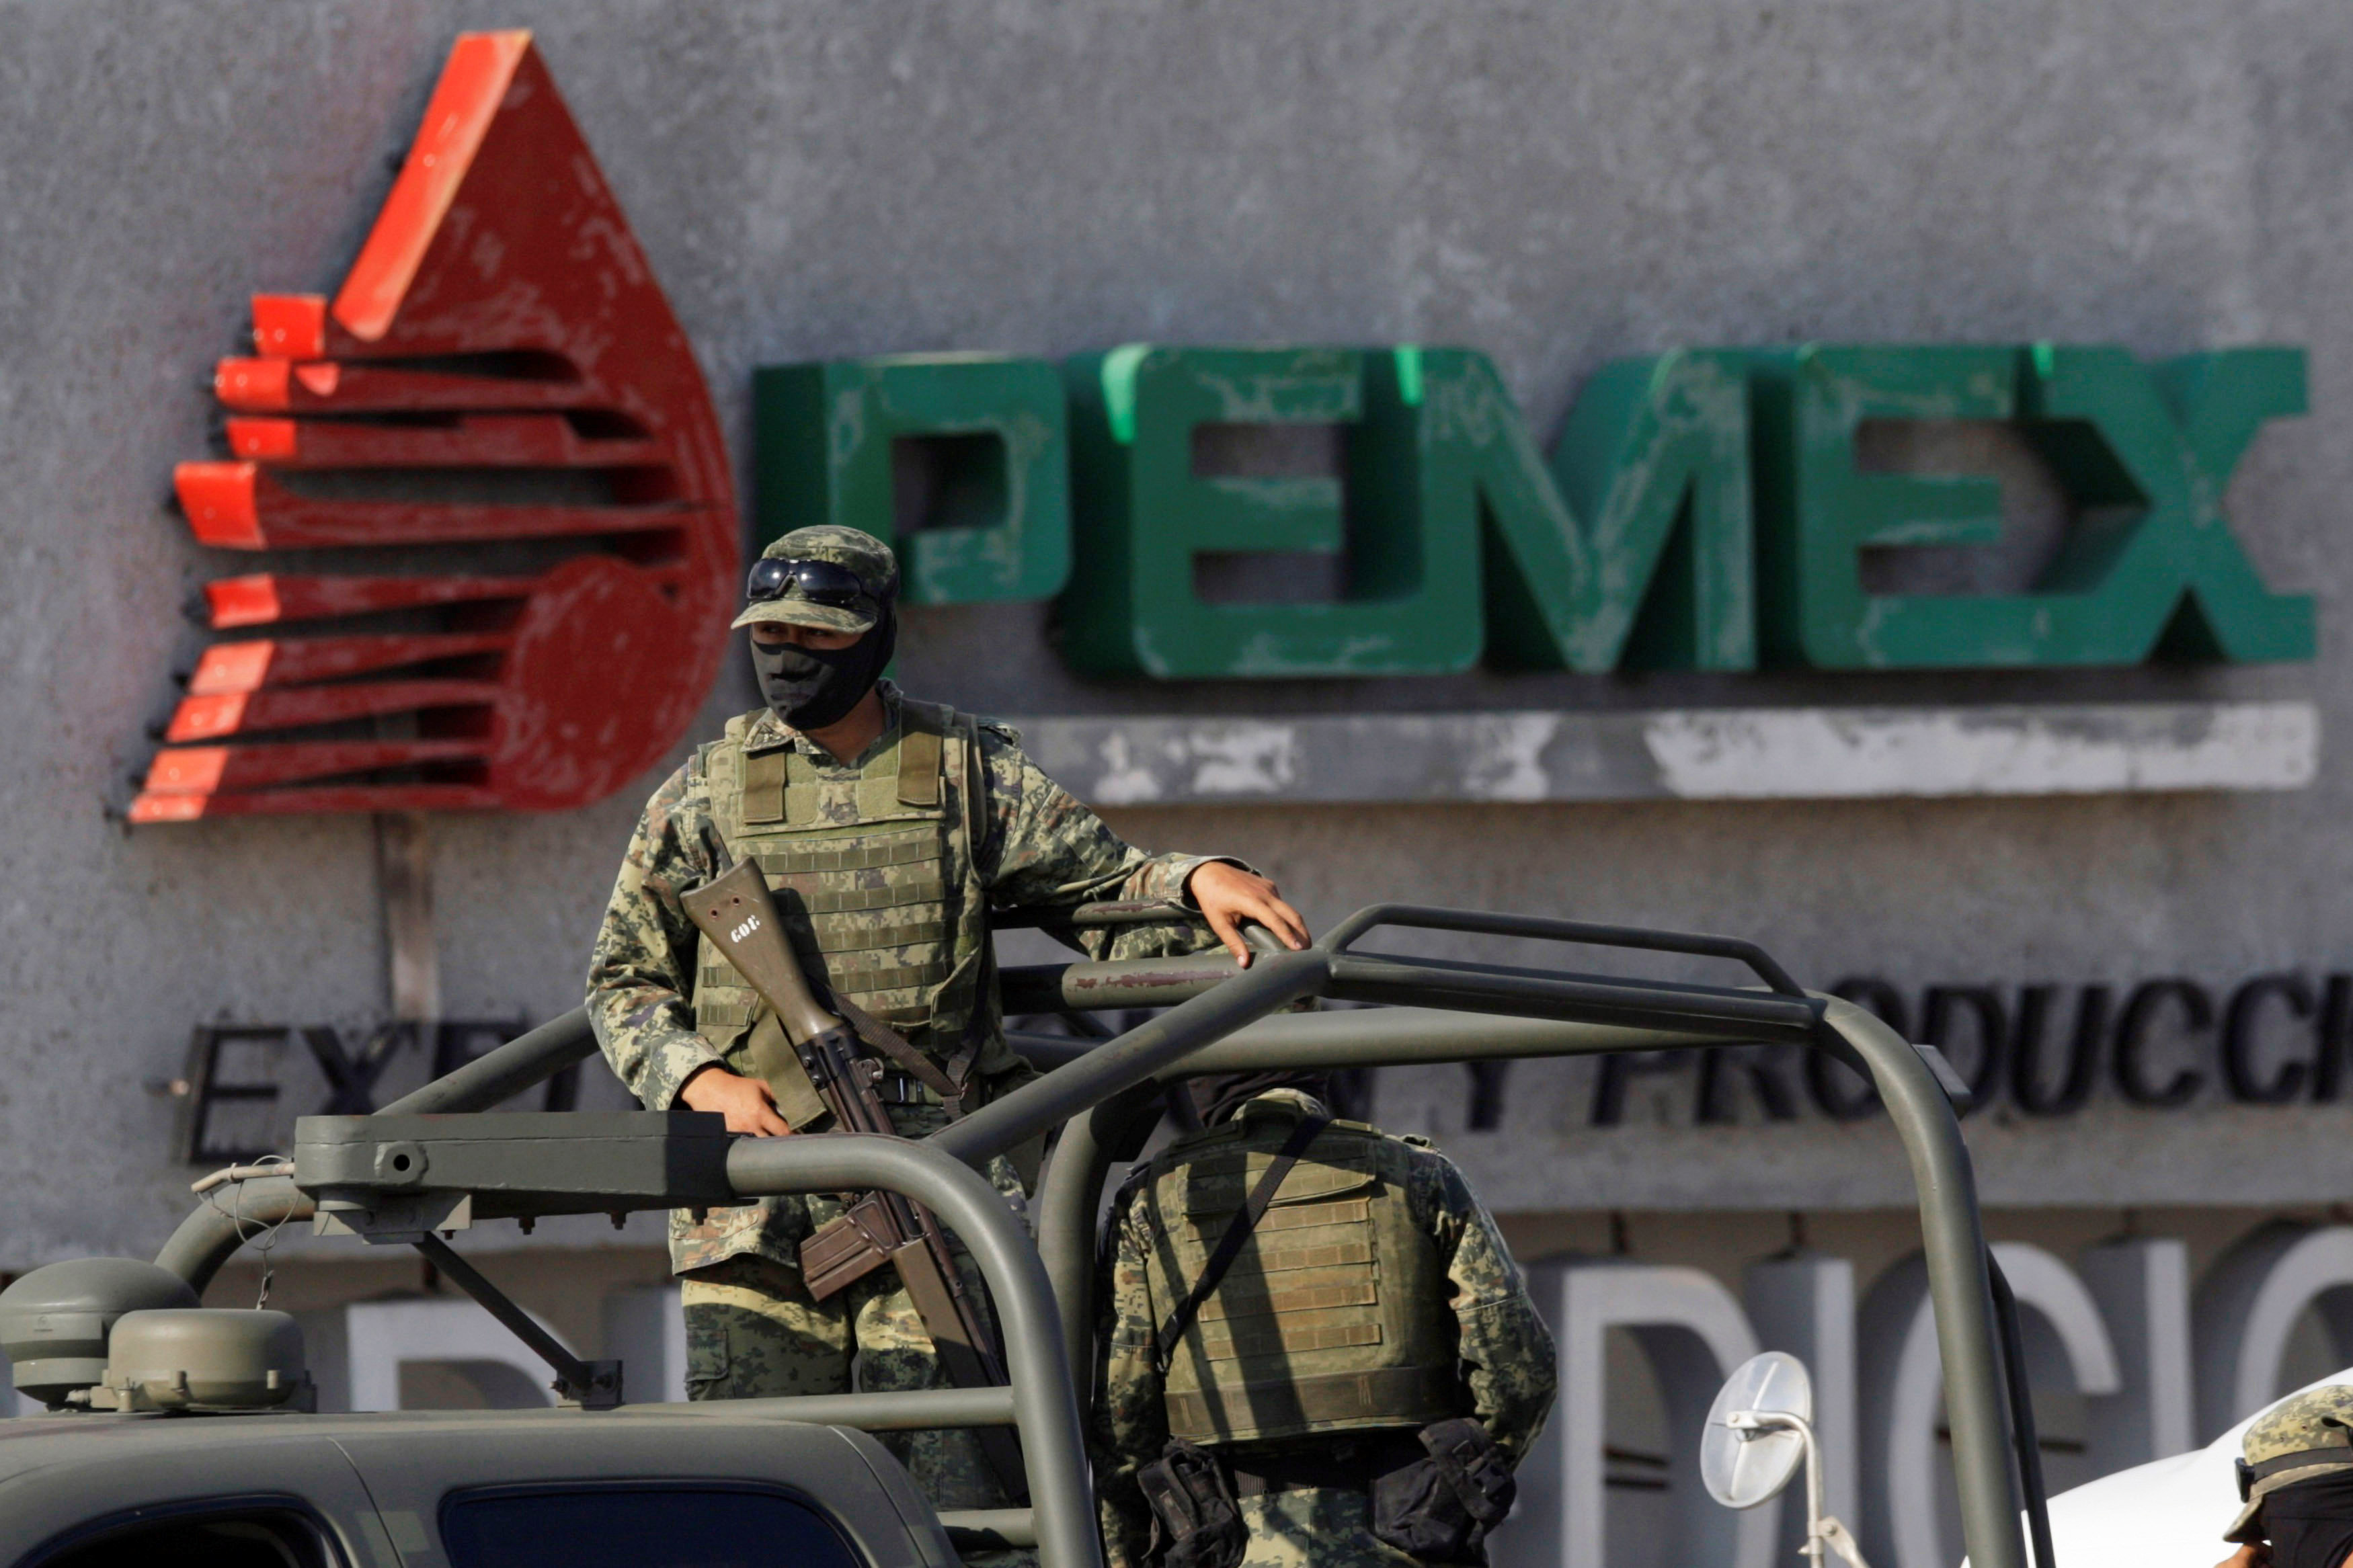 In Mexico's shale patch, cartel violence scares off drillers